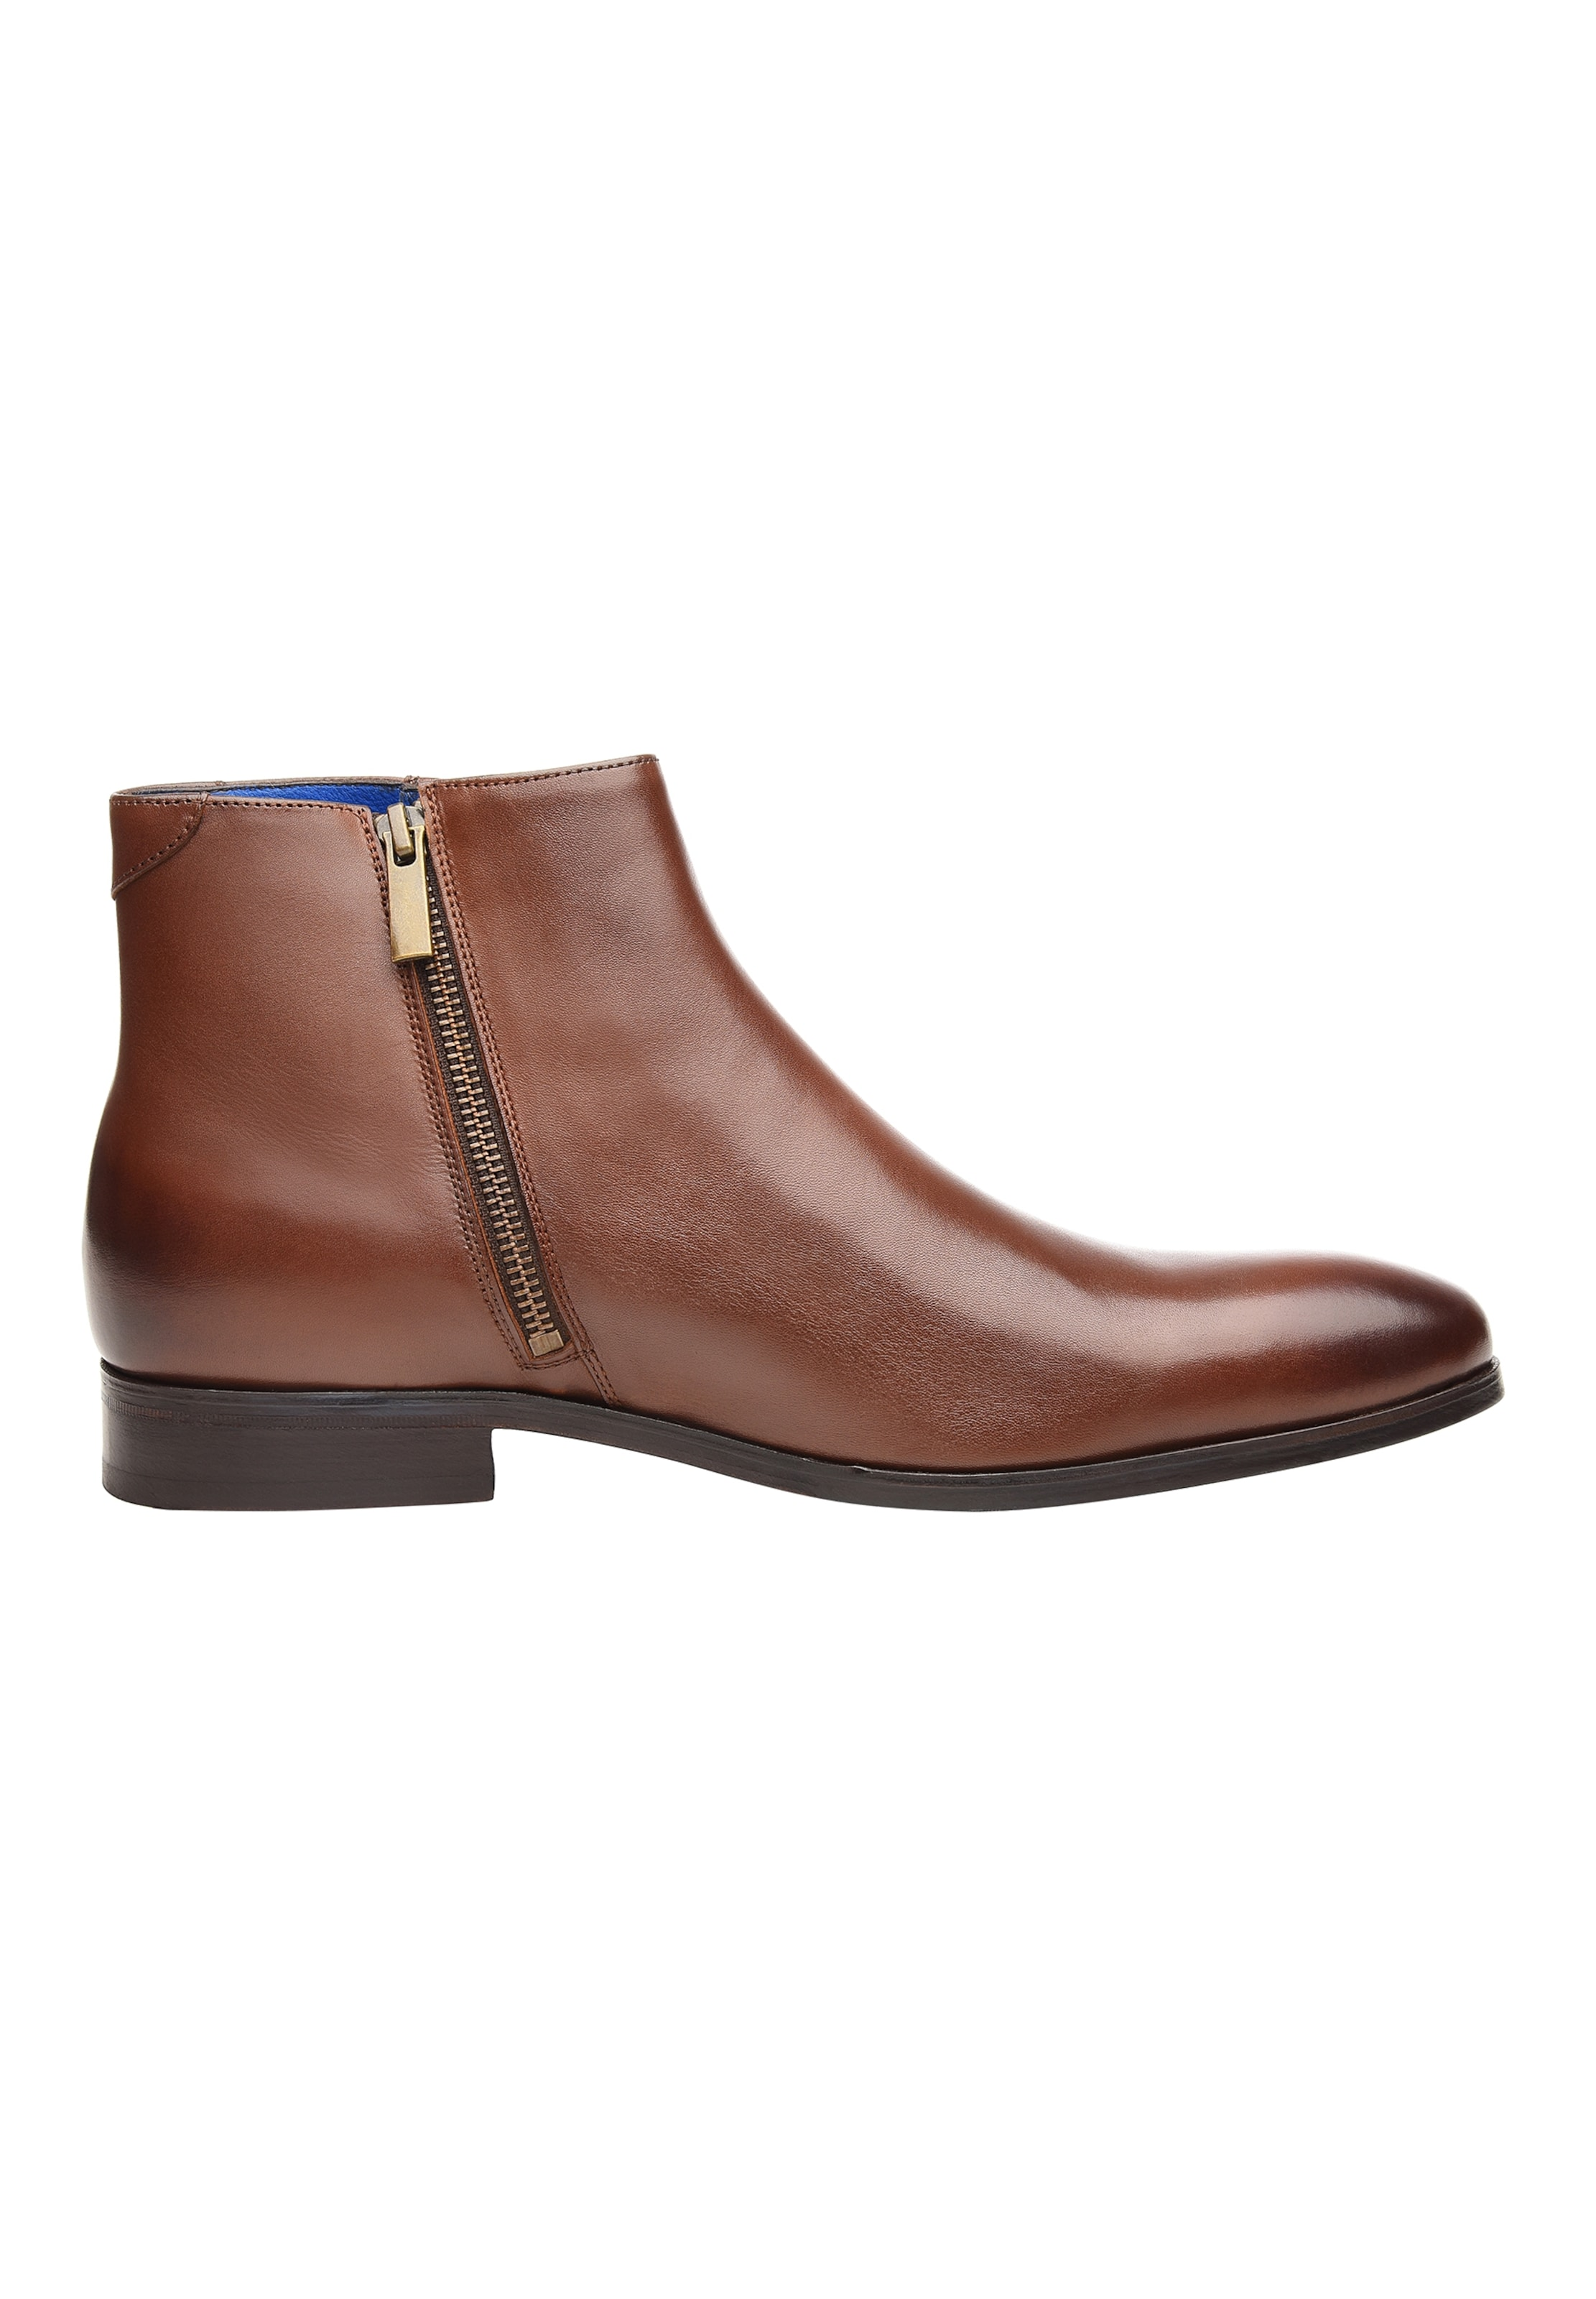 Bl' In Shoepassion 'no6821 Stiefeletten Rostbraun zqMVUpGS